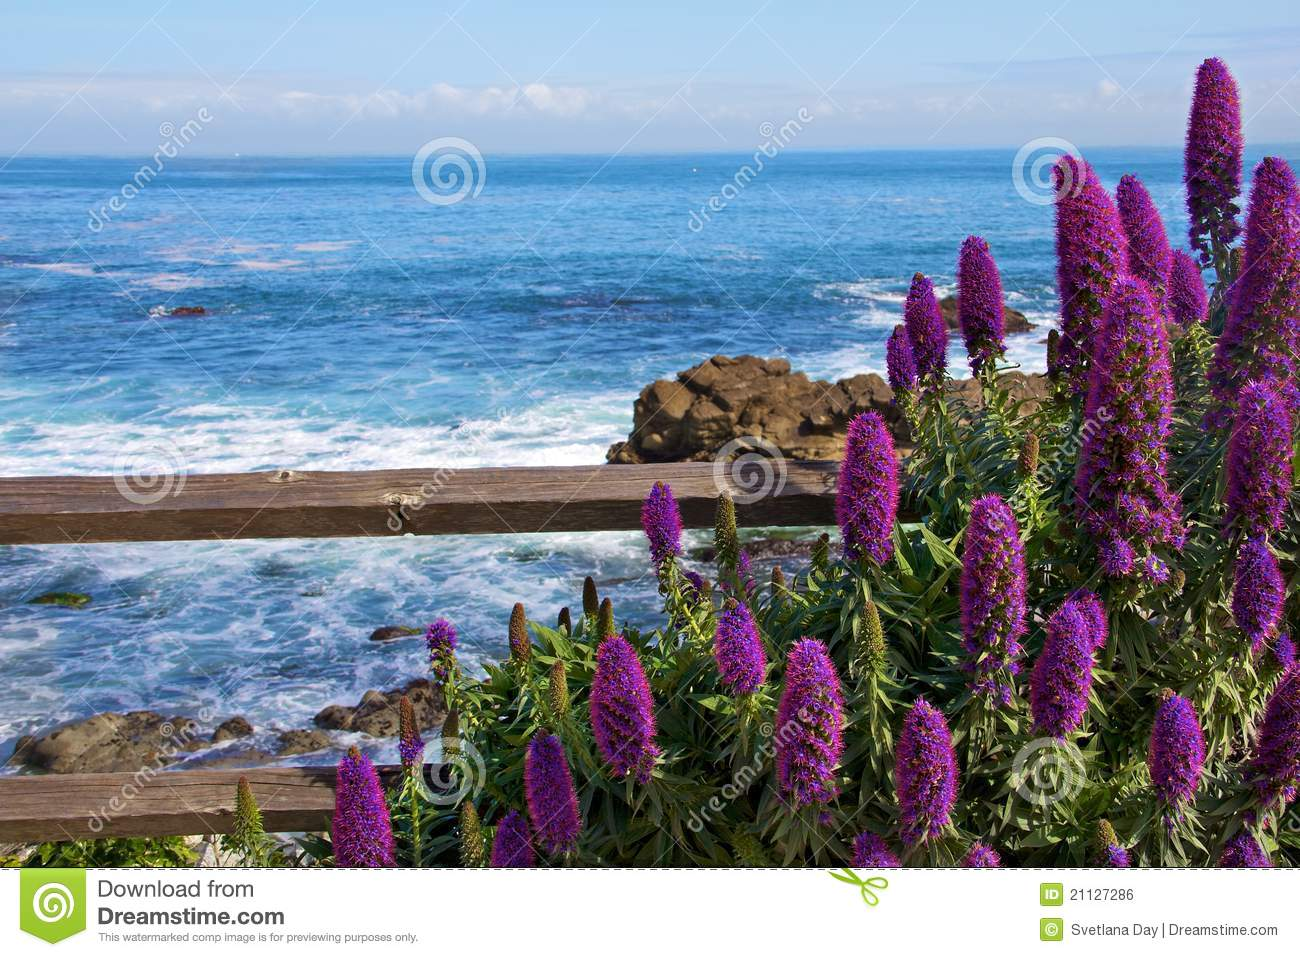 Calm Ocean With Purple Flowers In The Foreground Royalty